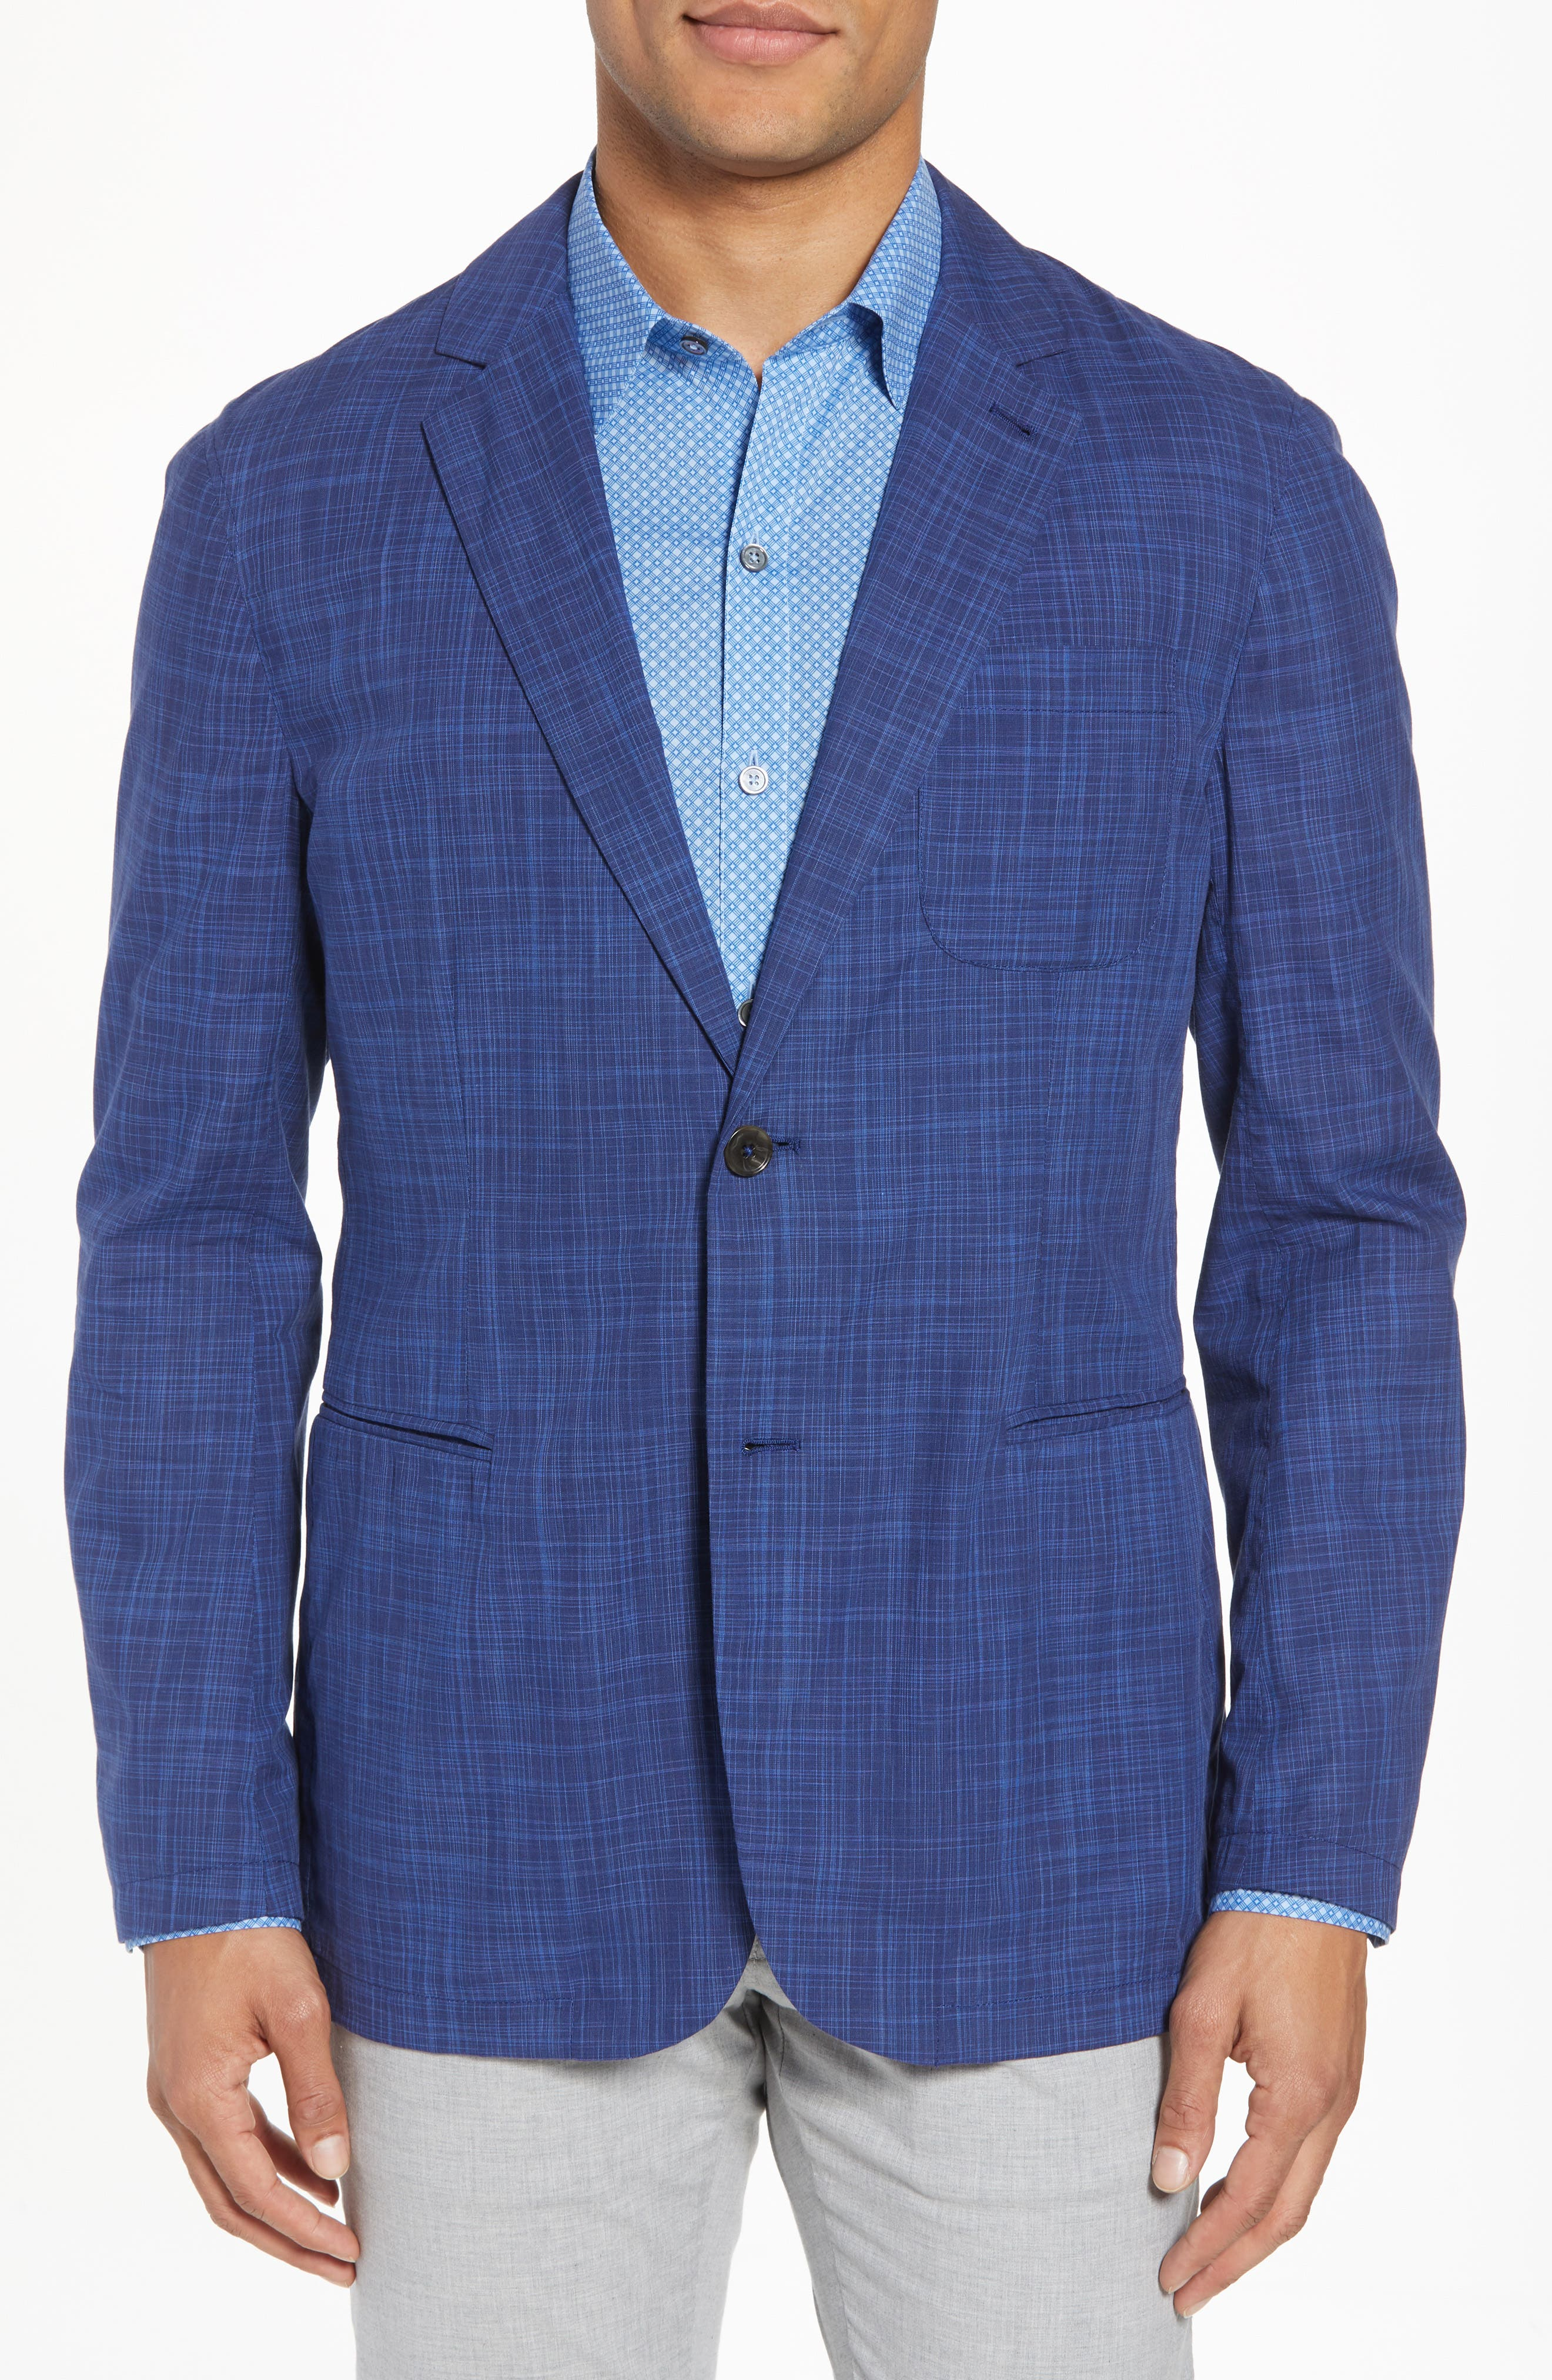 Belmont Regular Fit Sport Coat,                         Main,                         color, 400